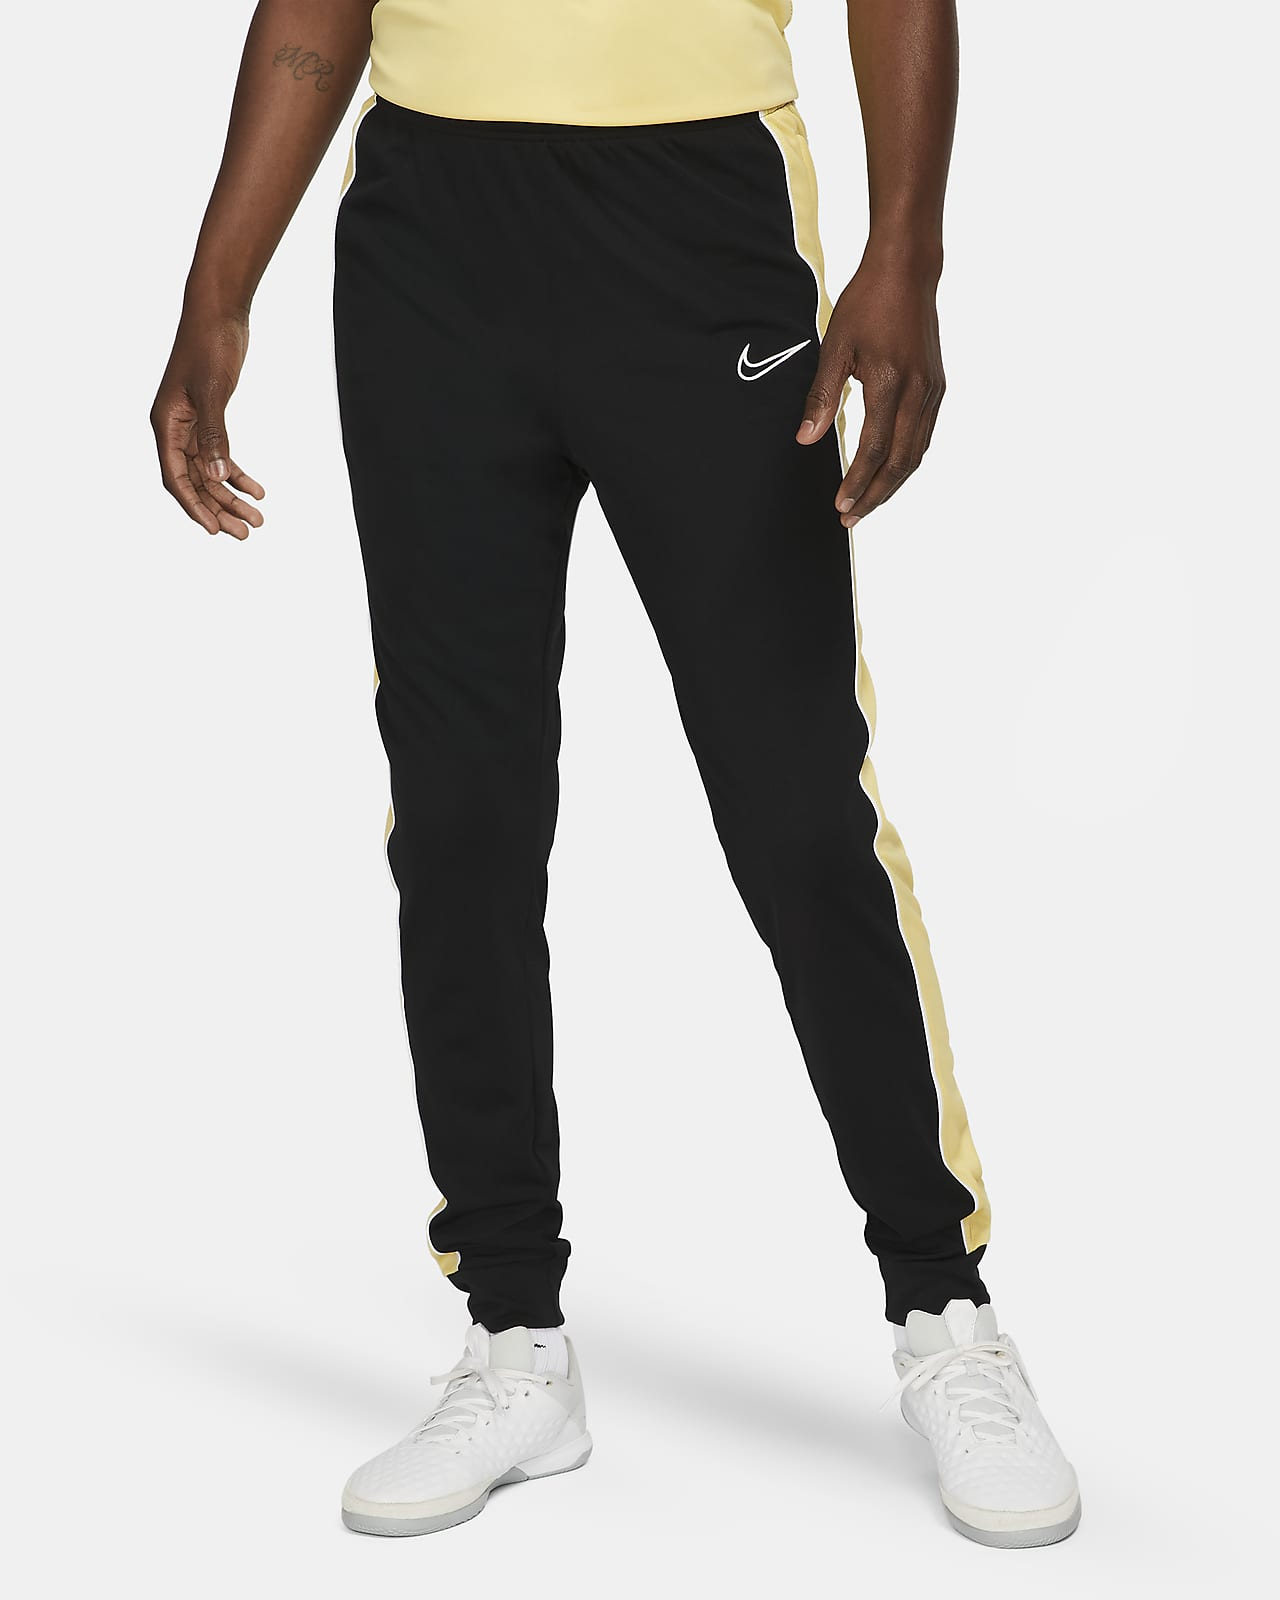 Nike Dri-FIT Academy Men's Knit Soccer Track Pants